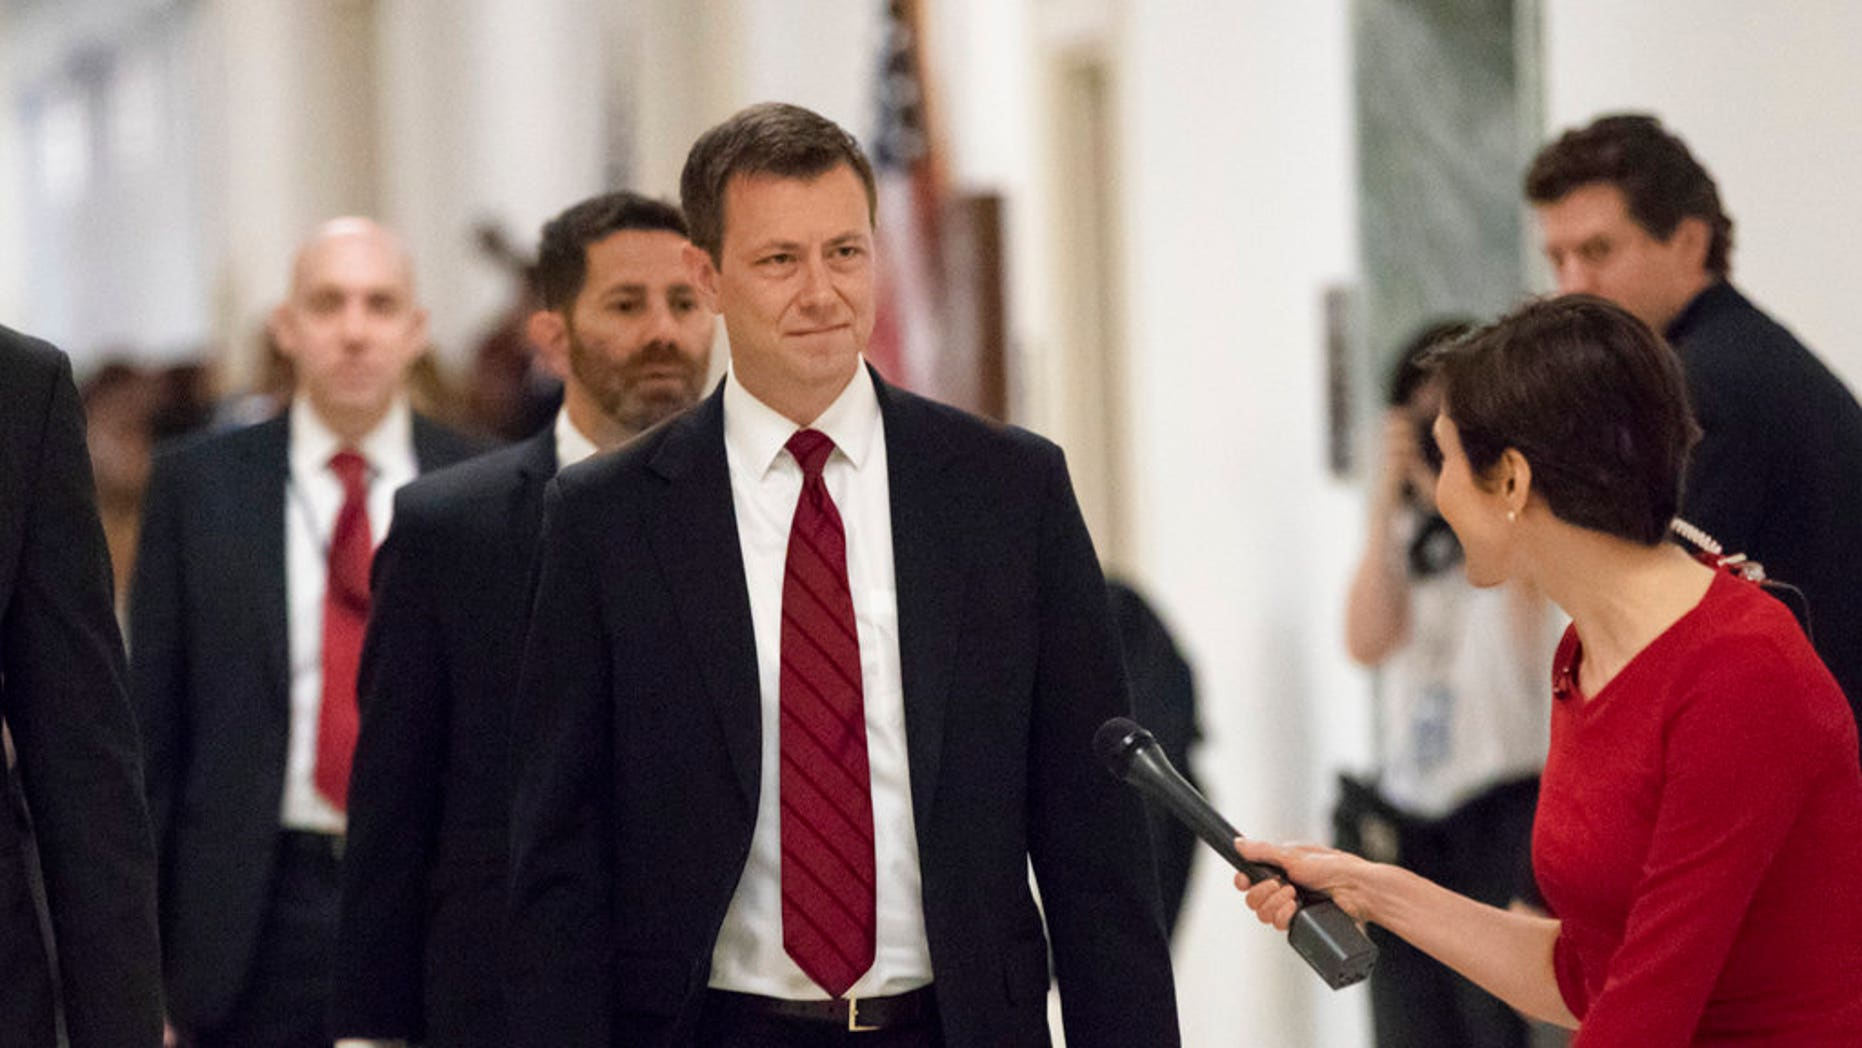 "FILE - In this June 27, 2018, file photo, Peter Strzok, the FBI agent facing criticism following a series of anti-Trump text messages, walks to gives a deposition before the House Judiciary Committee on Capitol Hill in Washington. Strzok, whose anti-Trump text messages fueled suspicions of partisan bias will tell lawmakers July 12 that his law enforcement work has never been tainted by political considerations and that the intense congressional scrutiny of him represents ""just another victory notch in Putin's belt,"" according to prepared remarks obtained by The Associated Press.(AP Photo/J. Scott Applewhite, File)"